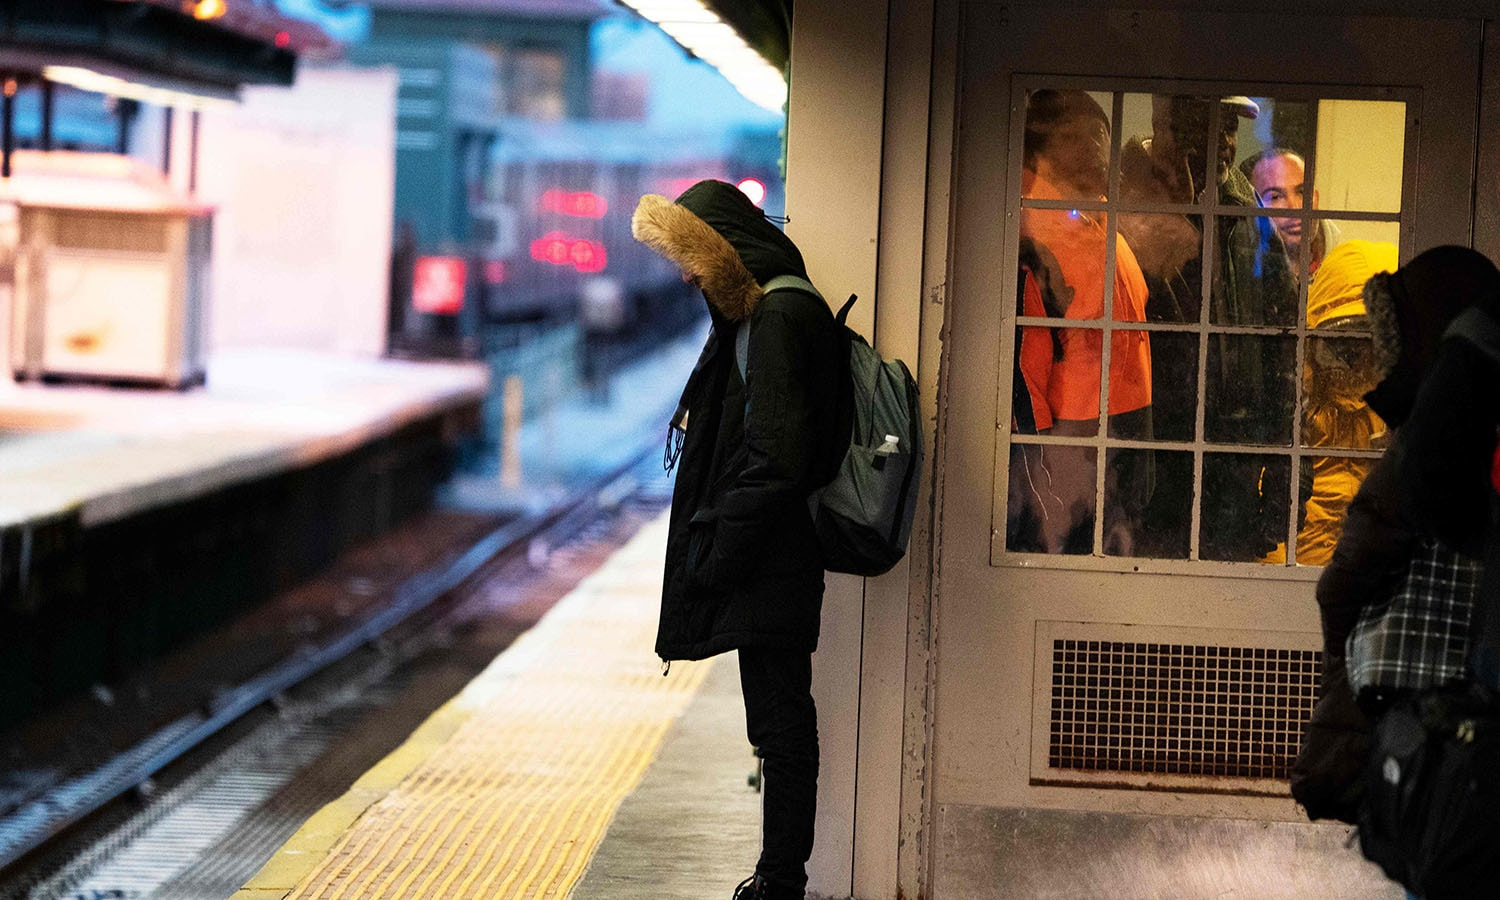 A young man waits on a subway platform in freezing temperatures on January 30, 2019 in New York. — AFP